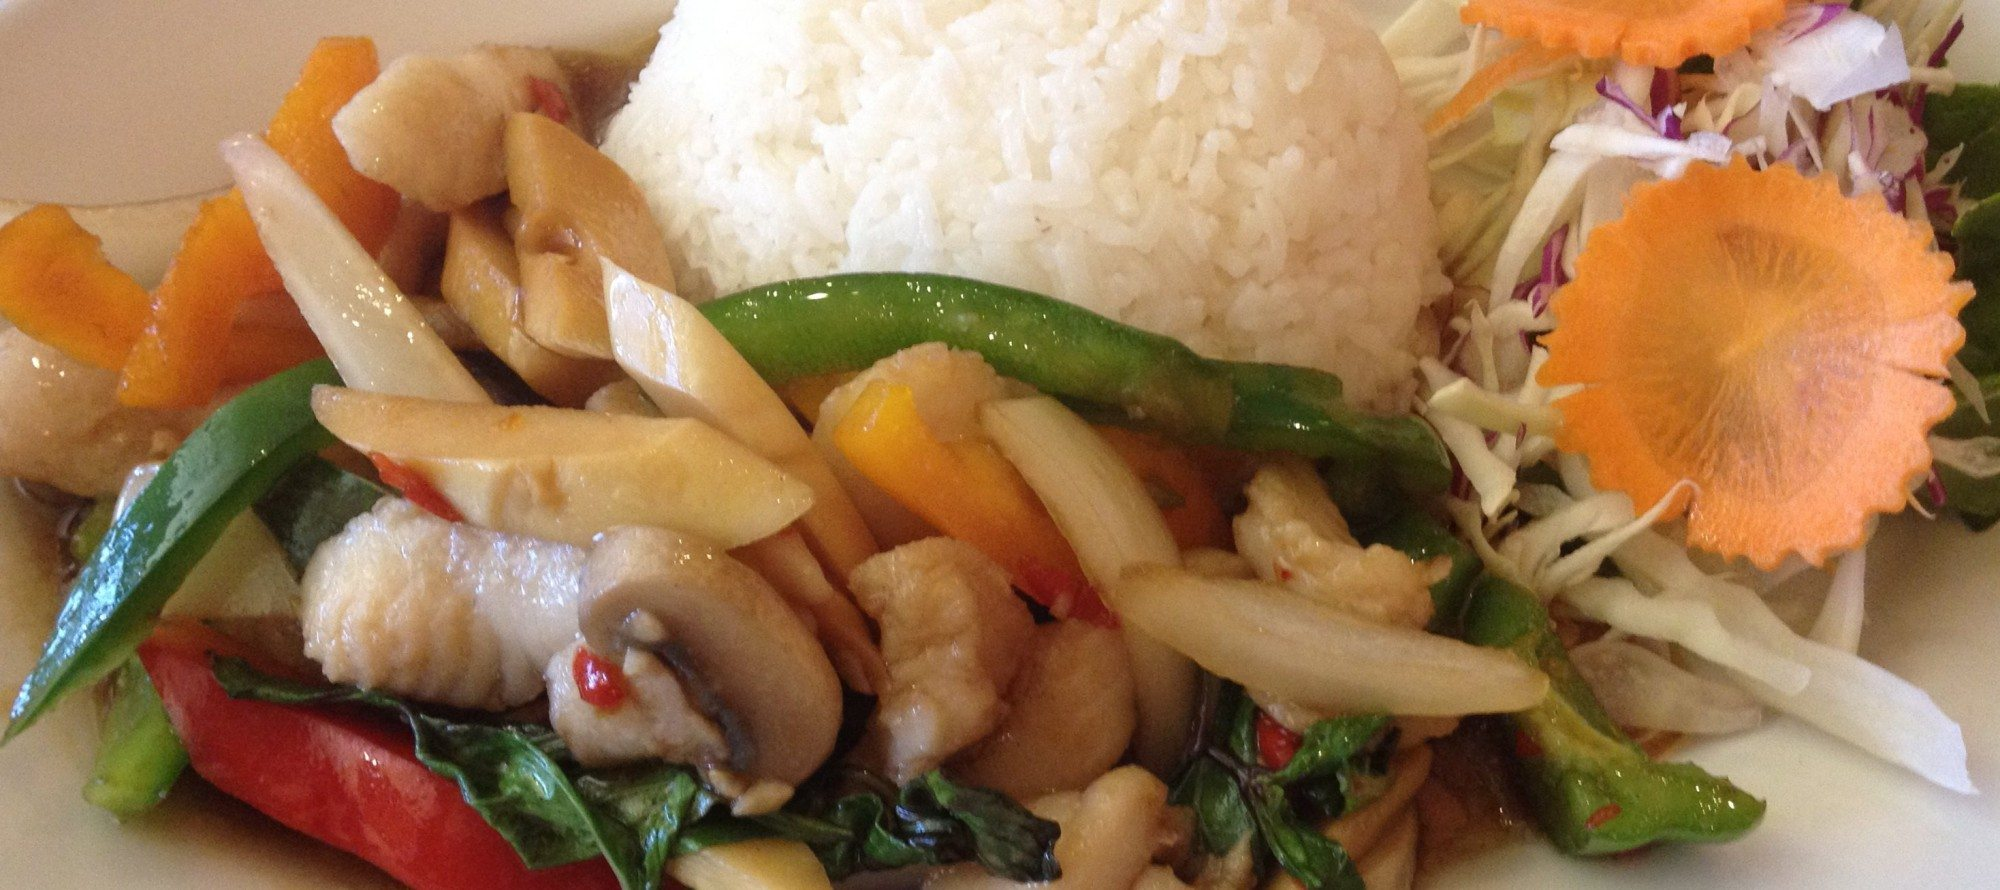 WEEKLY LUNCH PICK: Succumb to the lure of lemongrass at Pookie's Thai